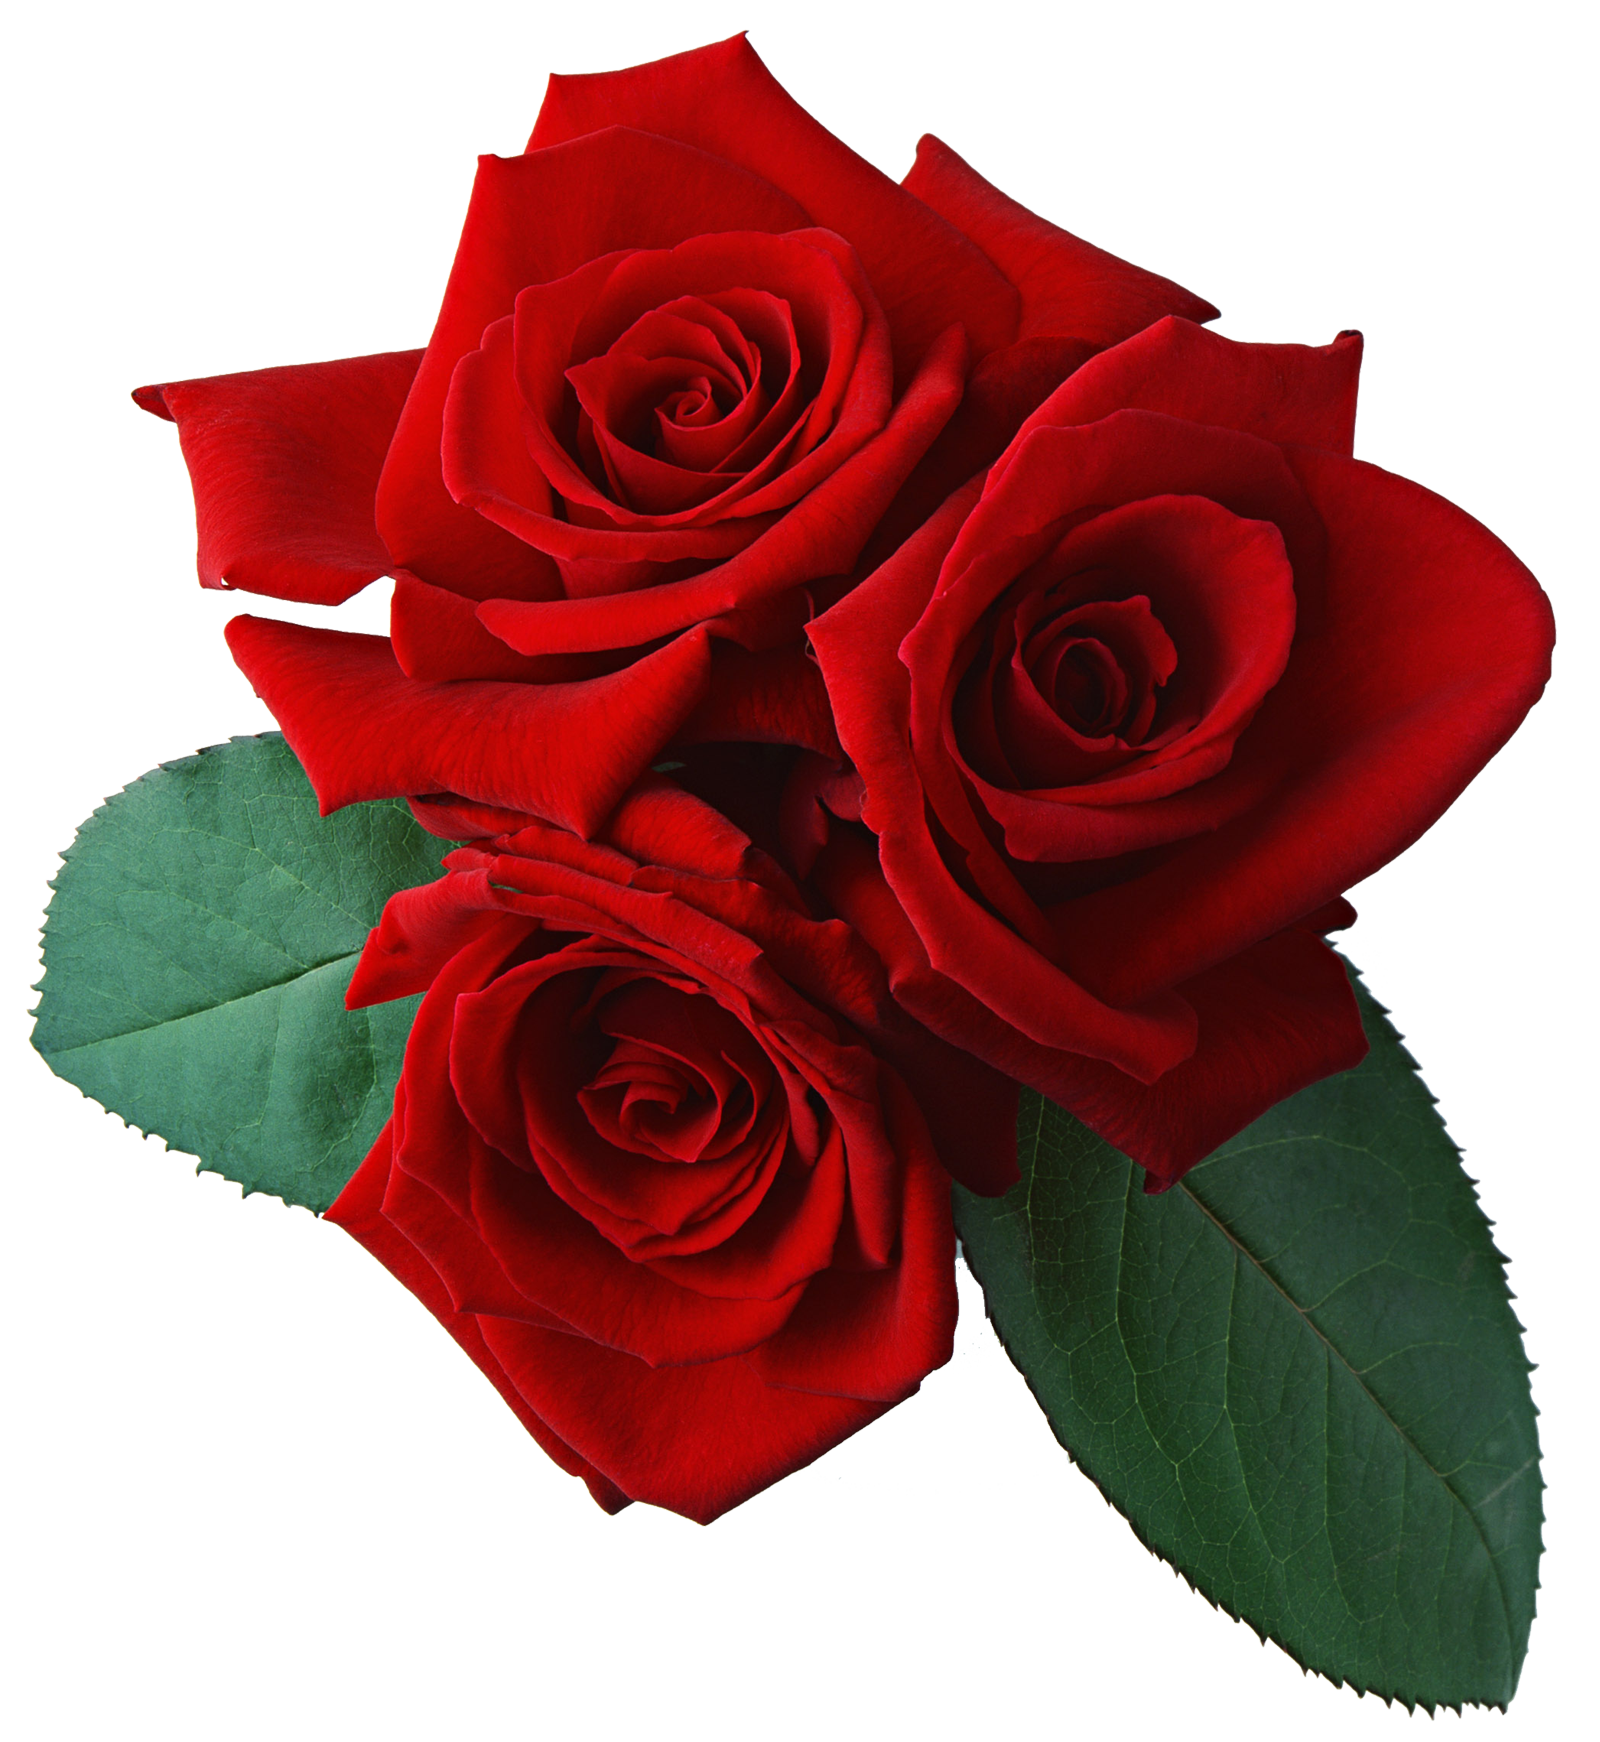 Rose Png Transparent image #39858